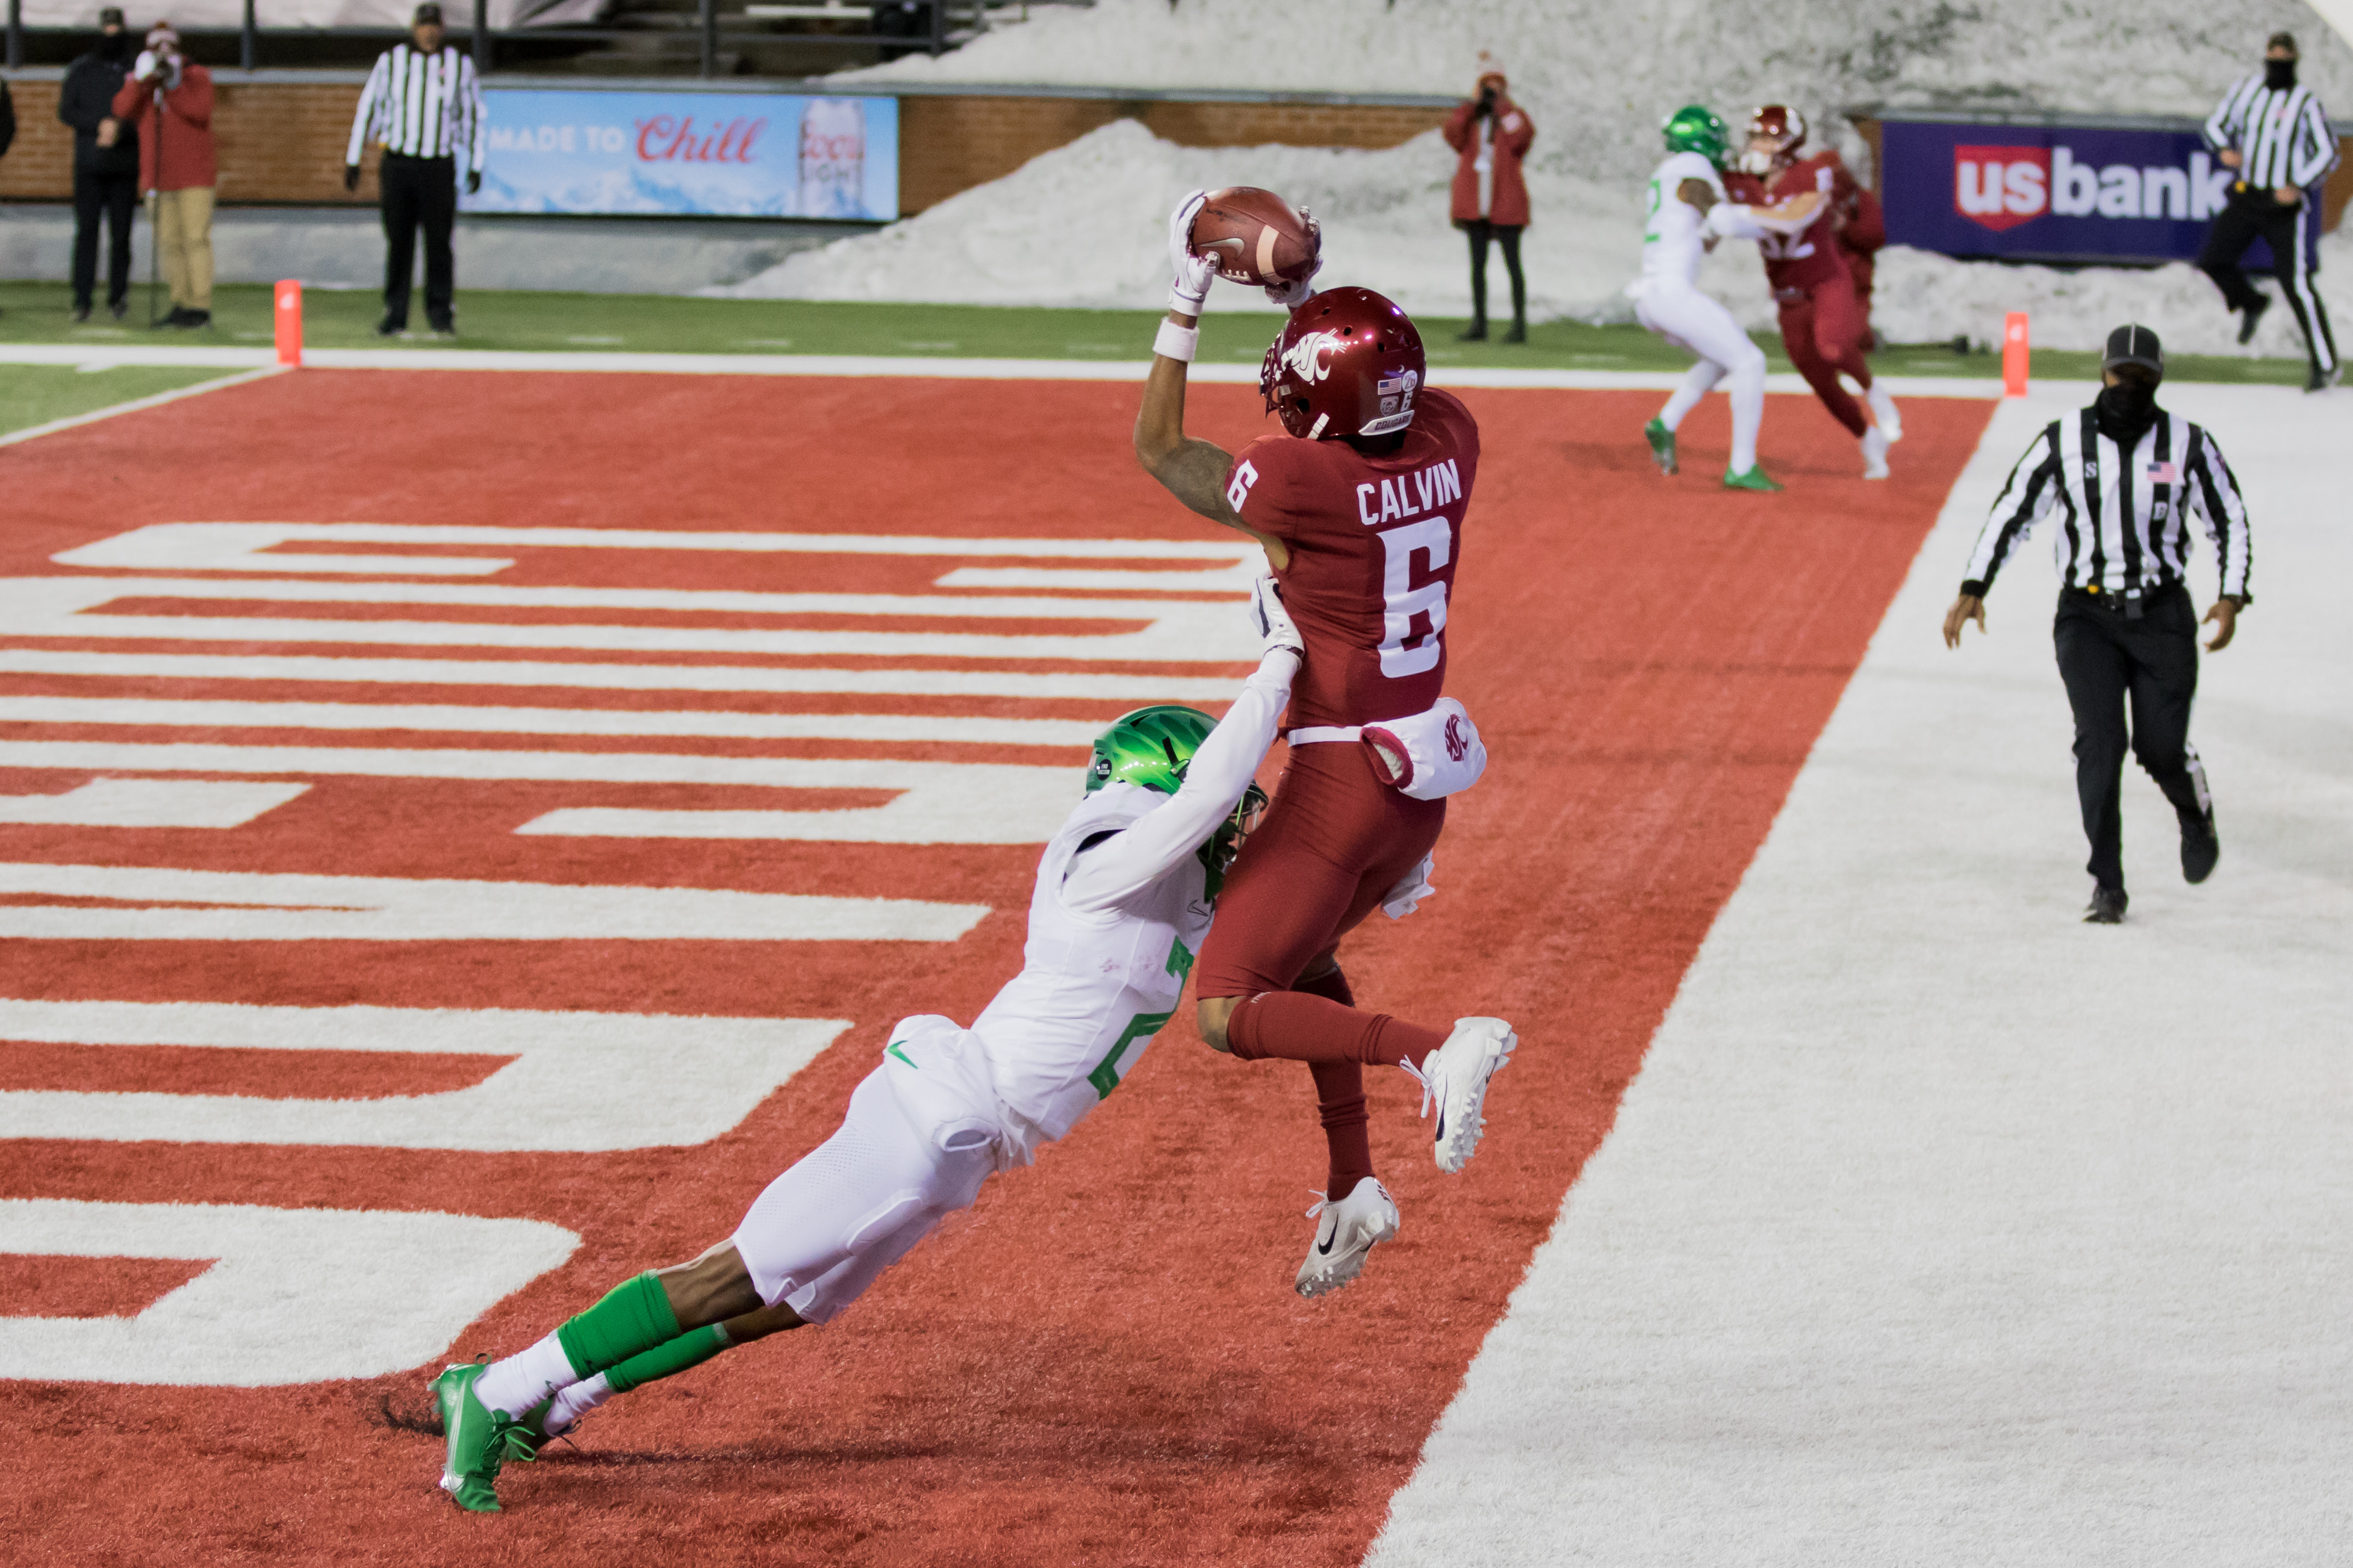 PULLMAN, WA - NOVEMBER 14: Washington State WR Jamire Calvin (6) catches a pass out of bounds in the forth quarter of the Pac 12 North divisional matchup between the Oregon Ducks and the Washington State Cougars on November 14, 2020, at Martin Stadium in Pullman, WA.